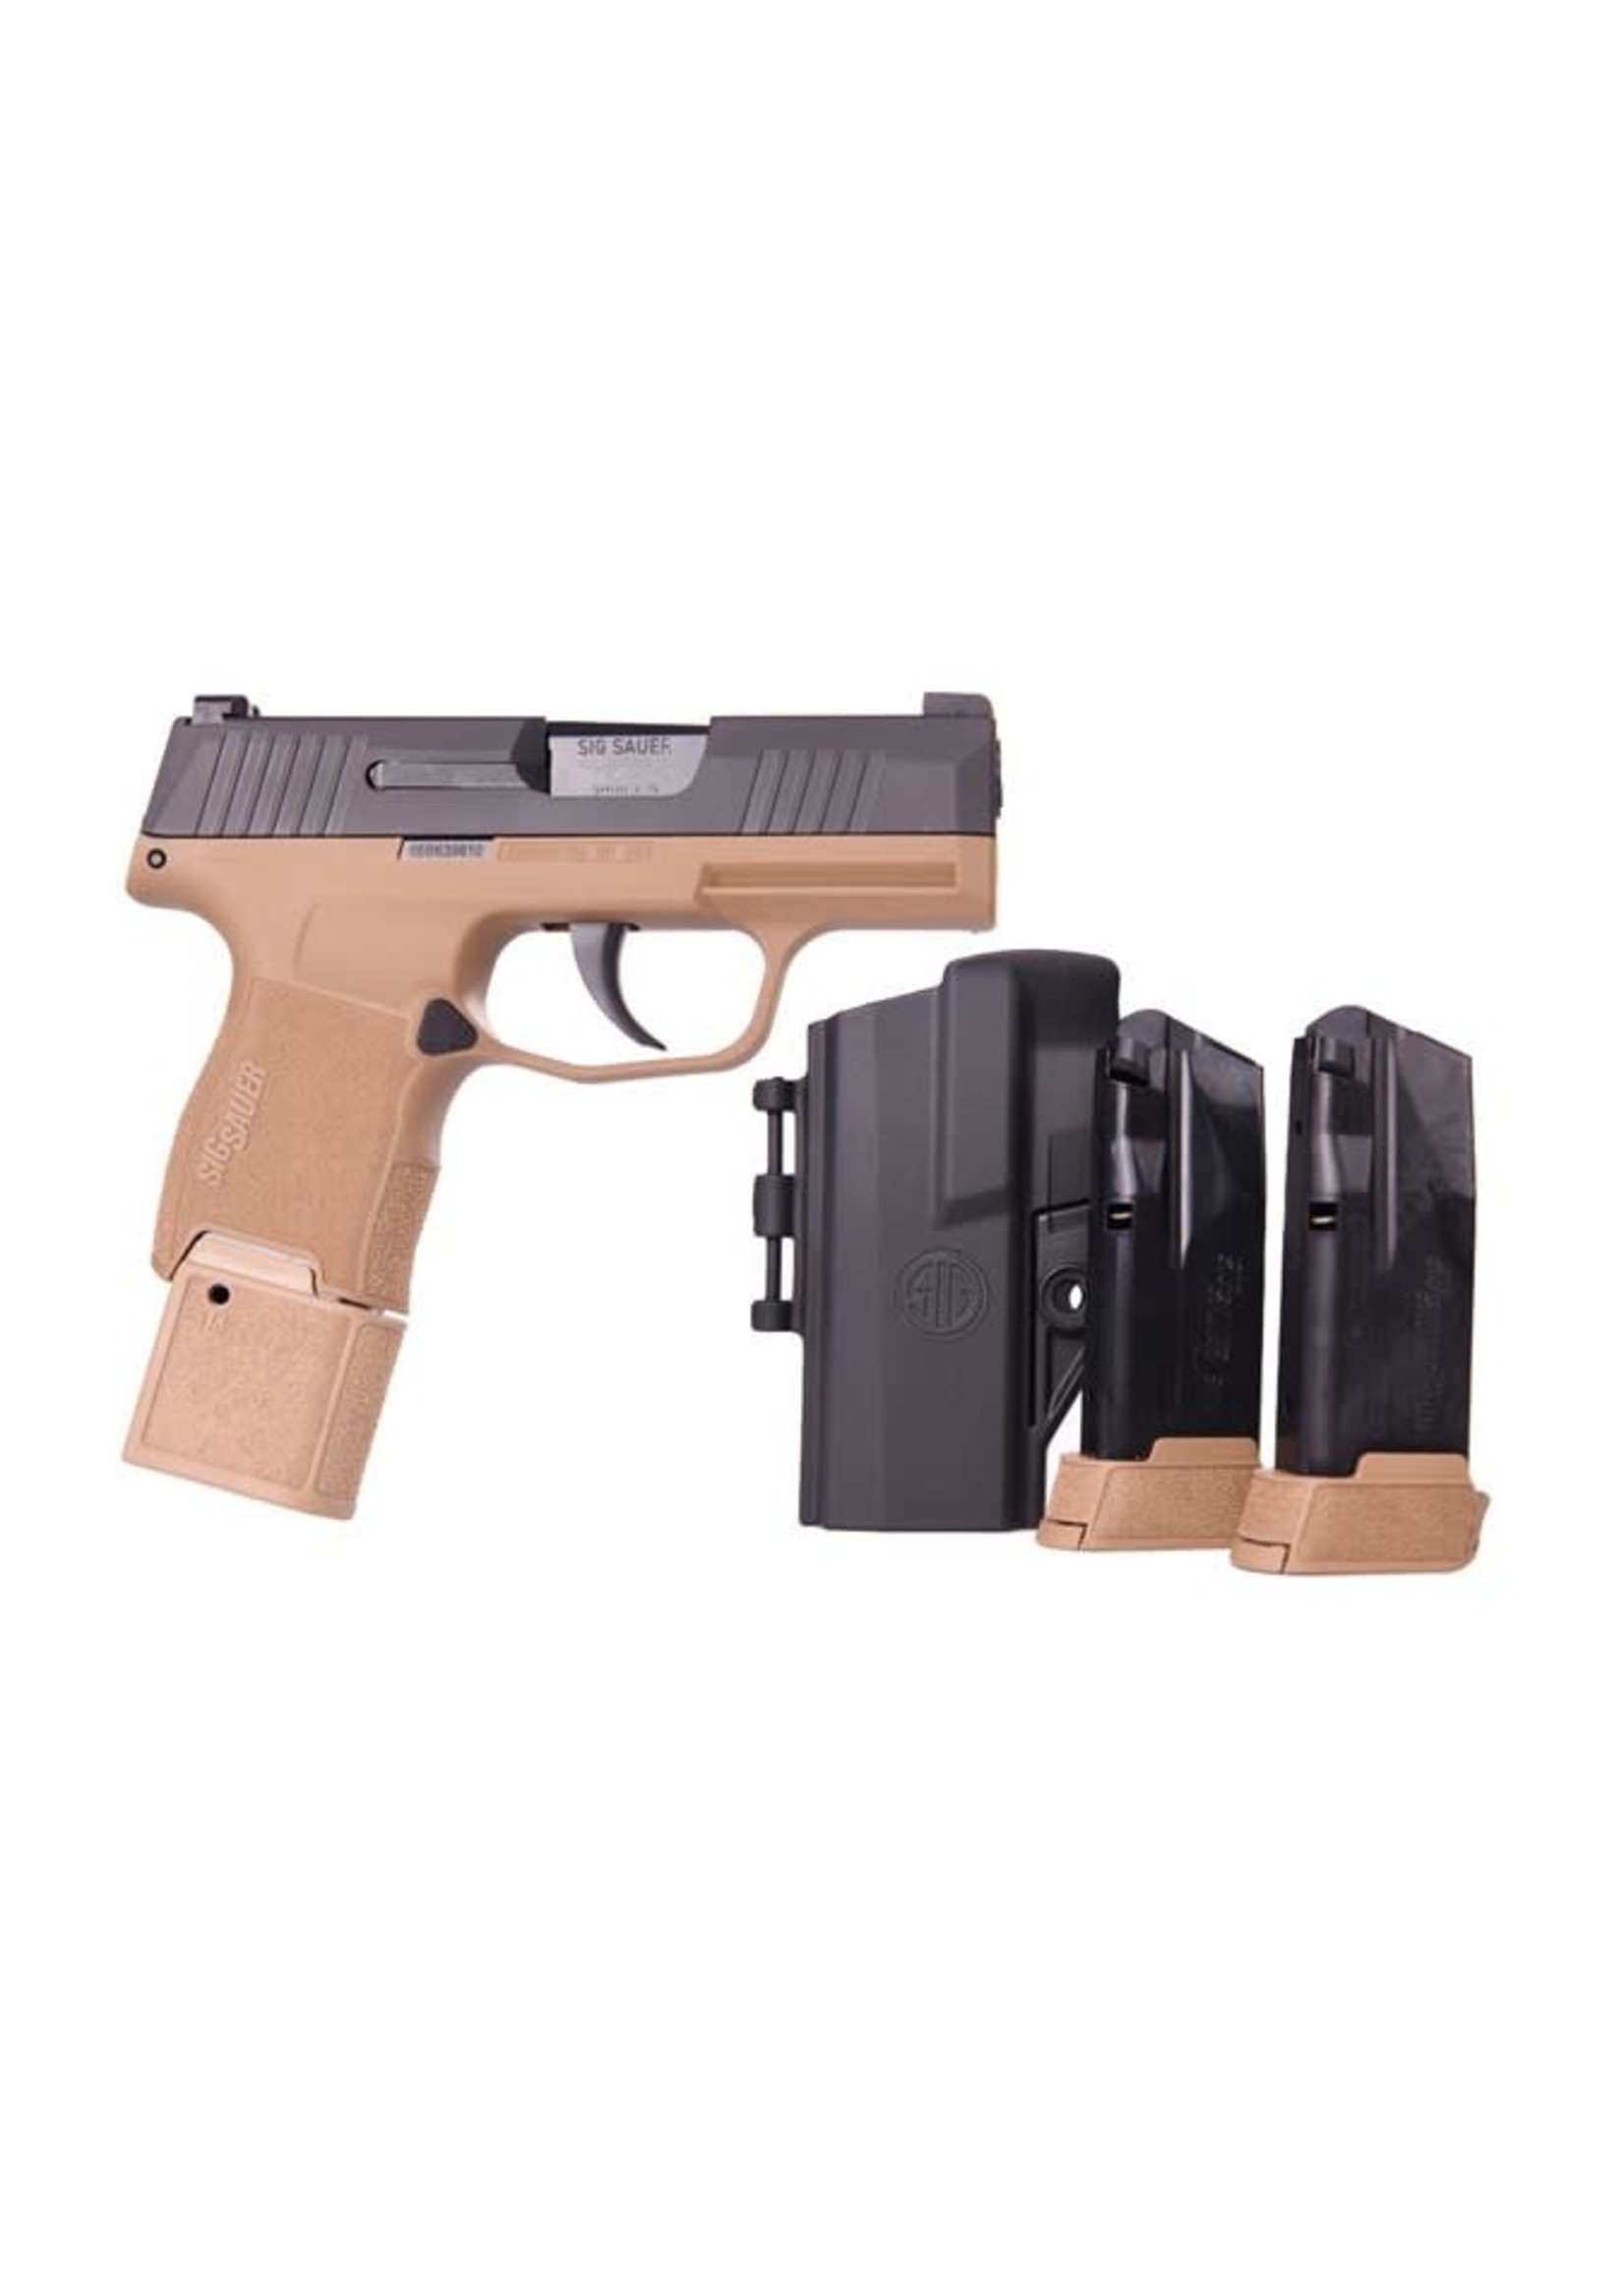 Sig Sauer Sig Sauer P365, 9mm, Black/FDE, 15+1, TacPac, 3 Magazines, 15+1, Night Sights, Includes Holster, Talo Exclusive